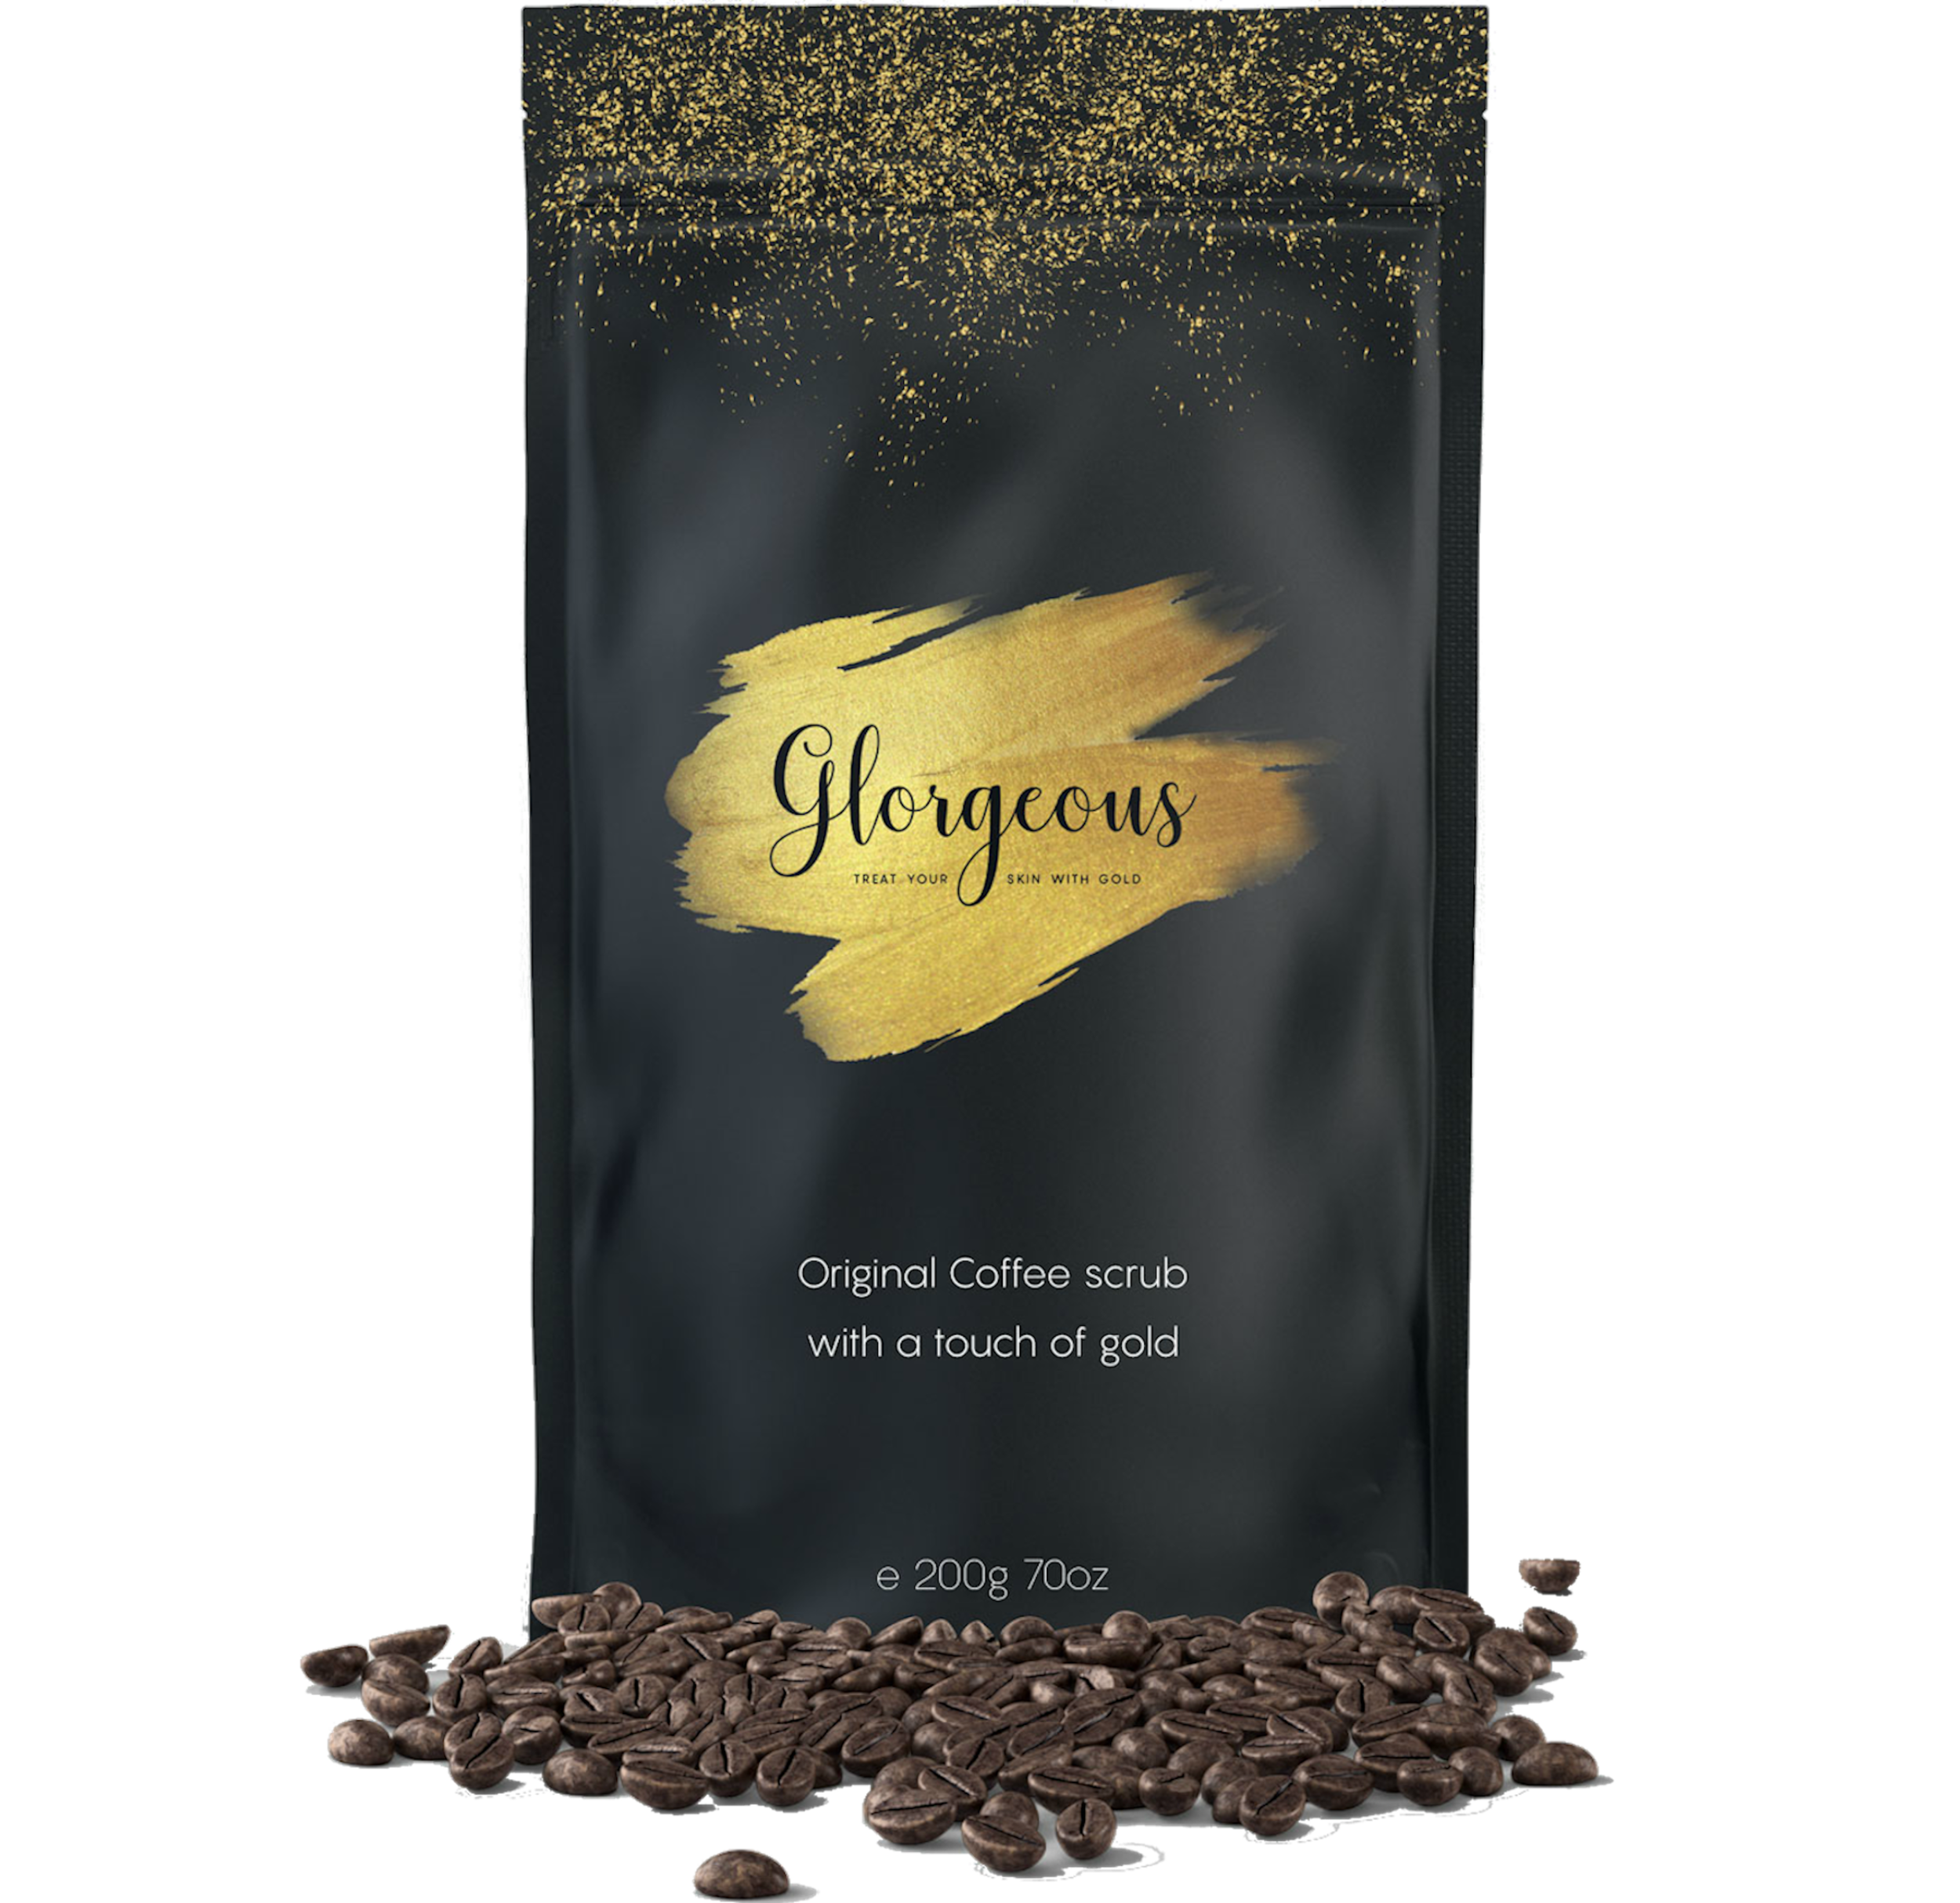 THE ORIGINAL COFFEE SCRUB WITH A TOUCH OF GOLD... -